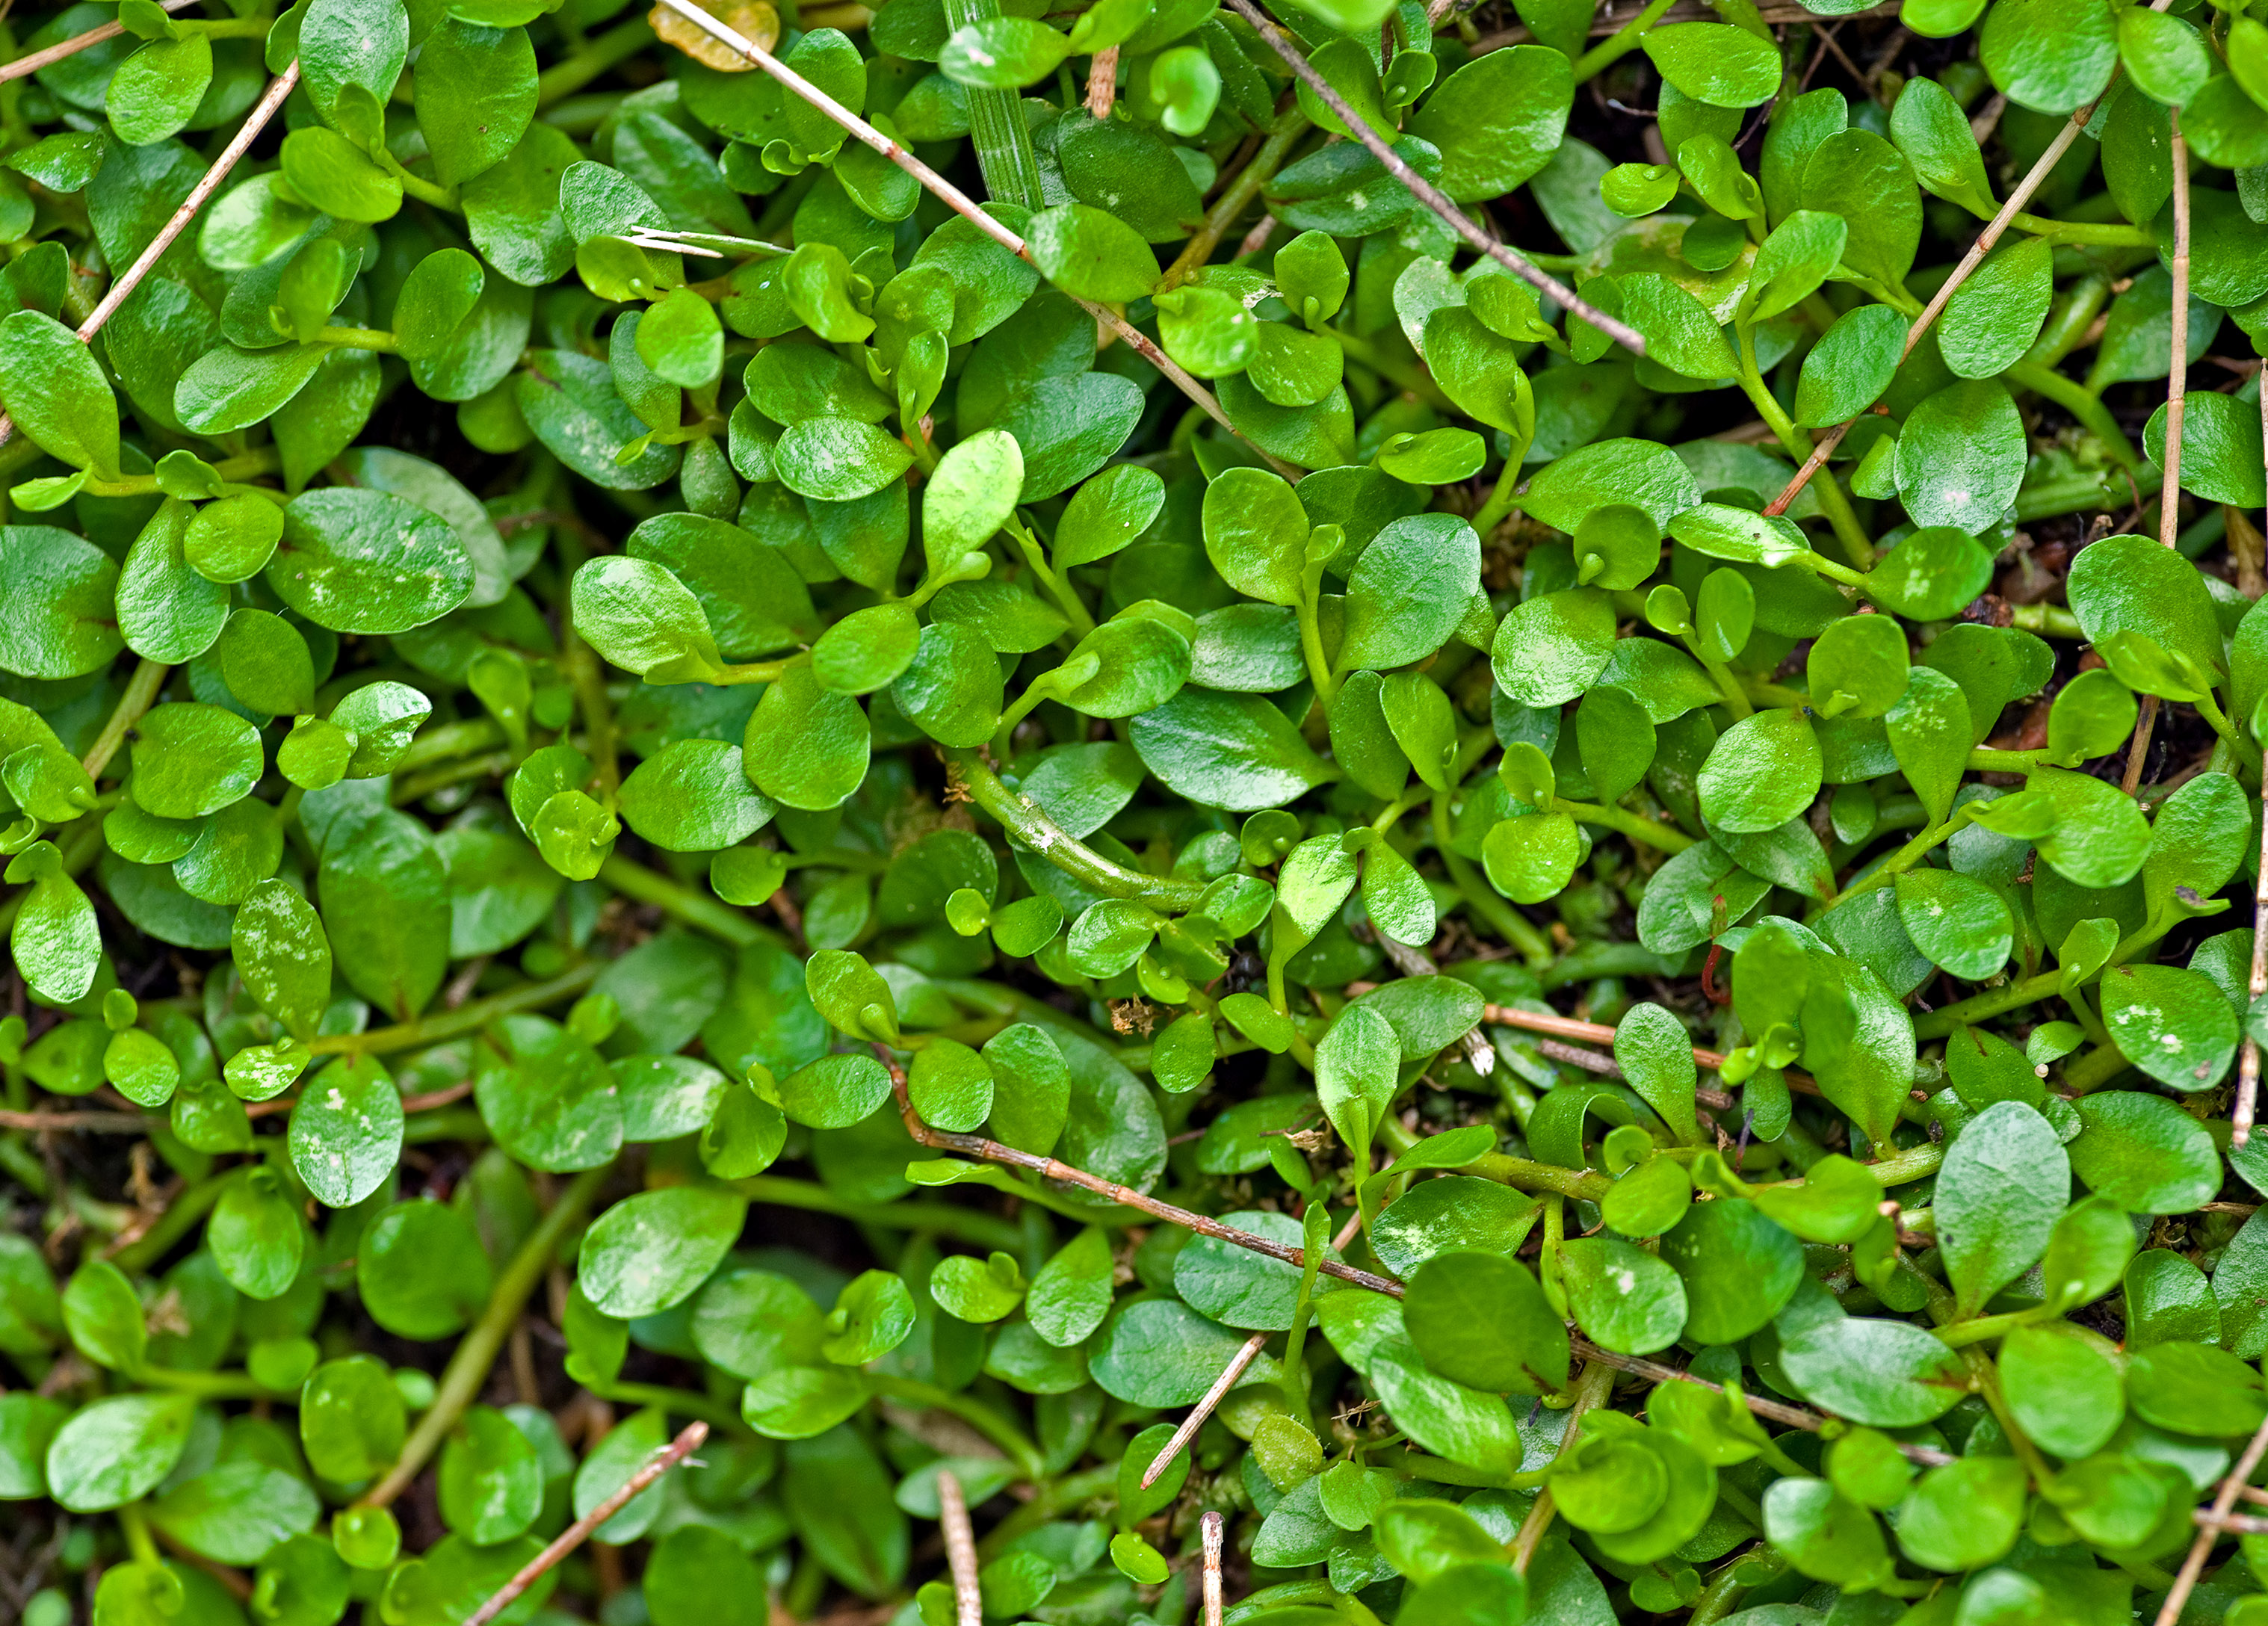 Creeper Wallpaper Hd Green Plant Background Texture Image Www Myfreetextures